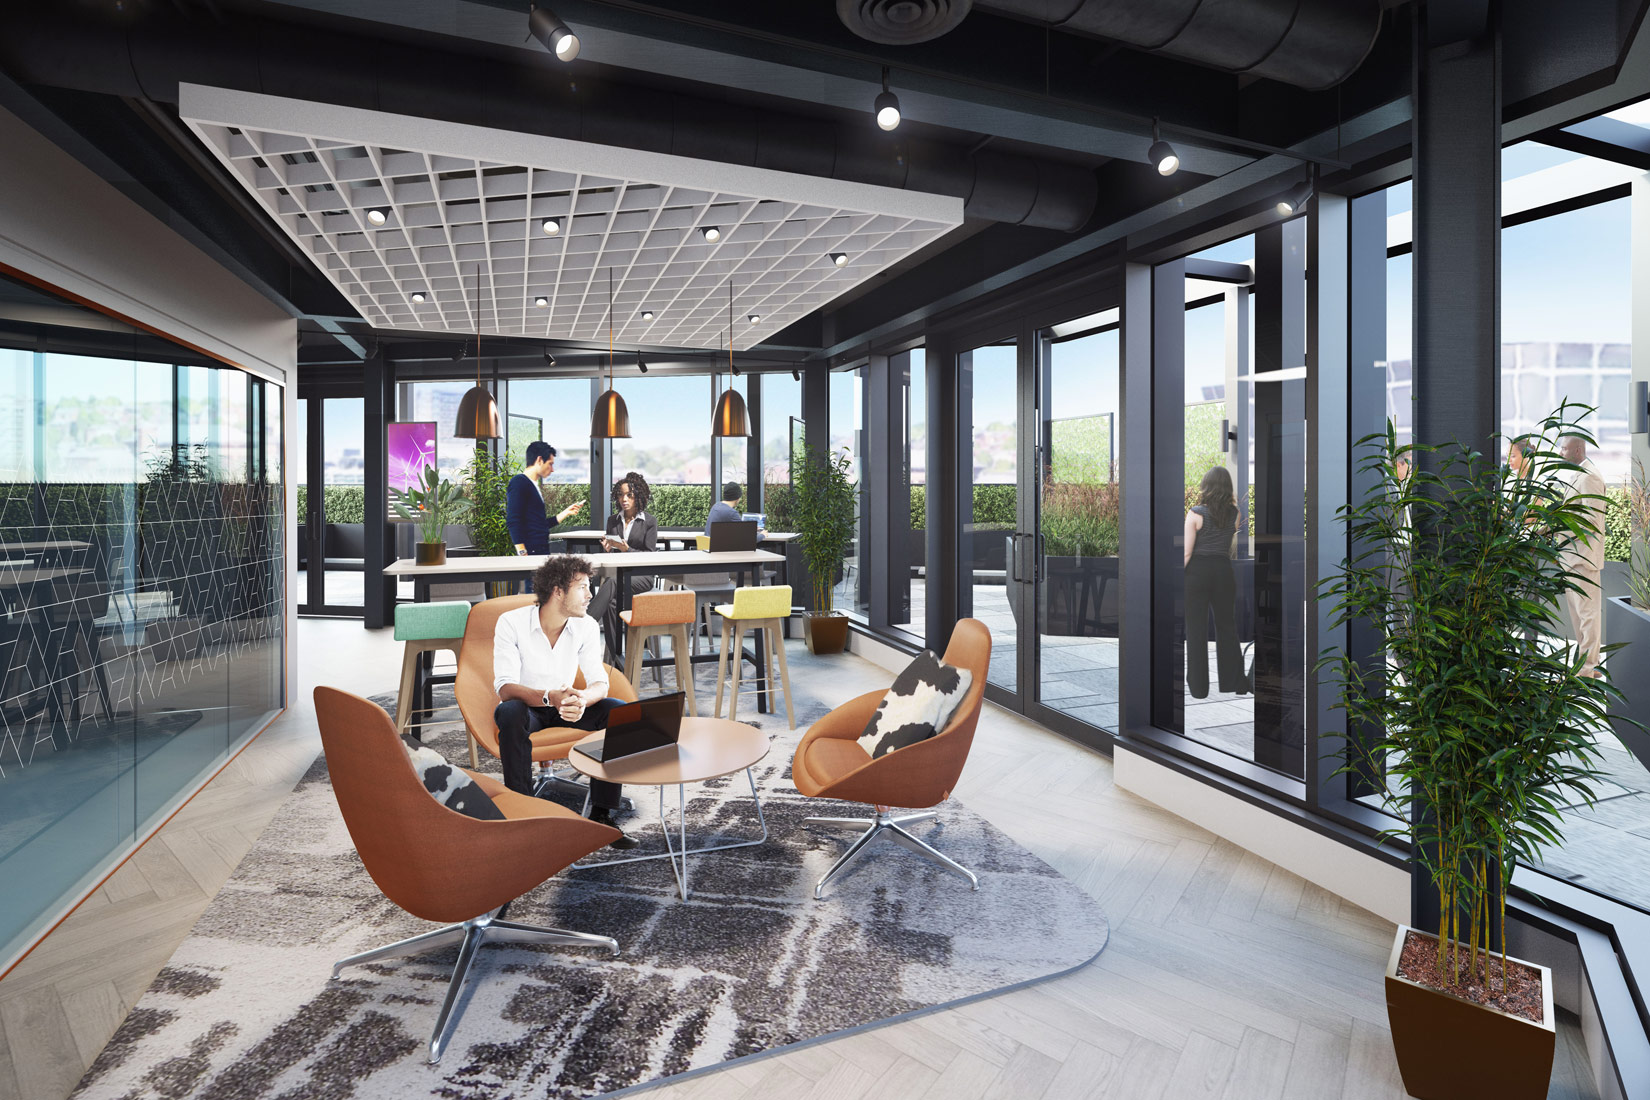 12 King Street, Leeds, 3D visual of office space and roof terrace